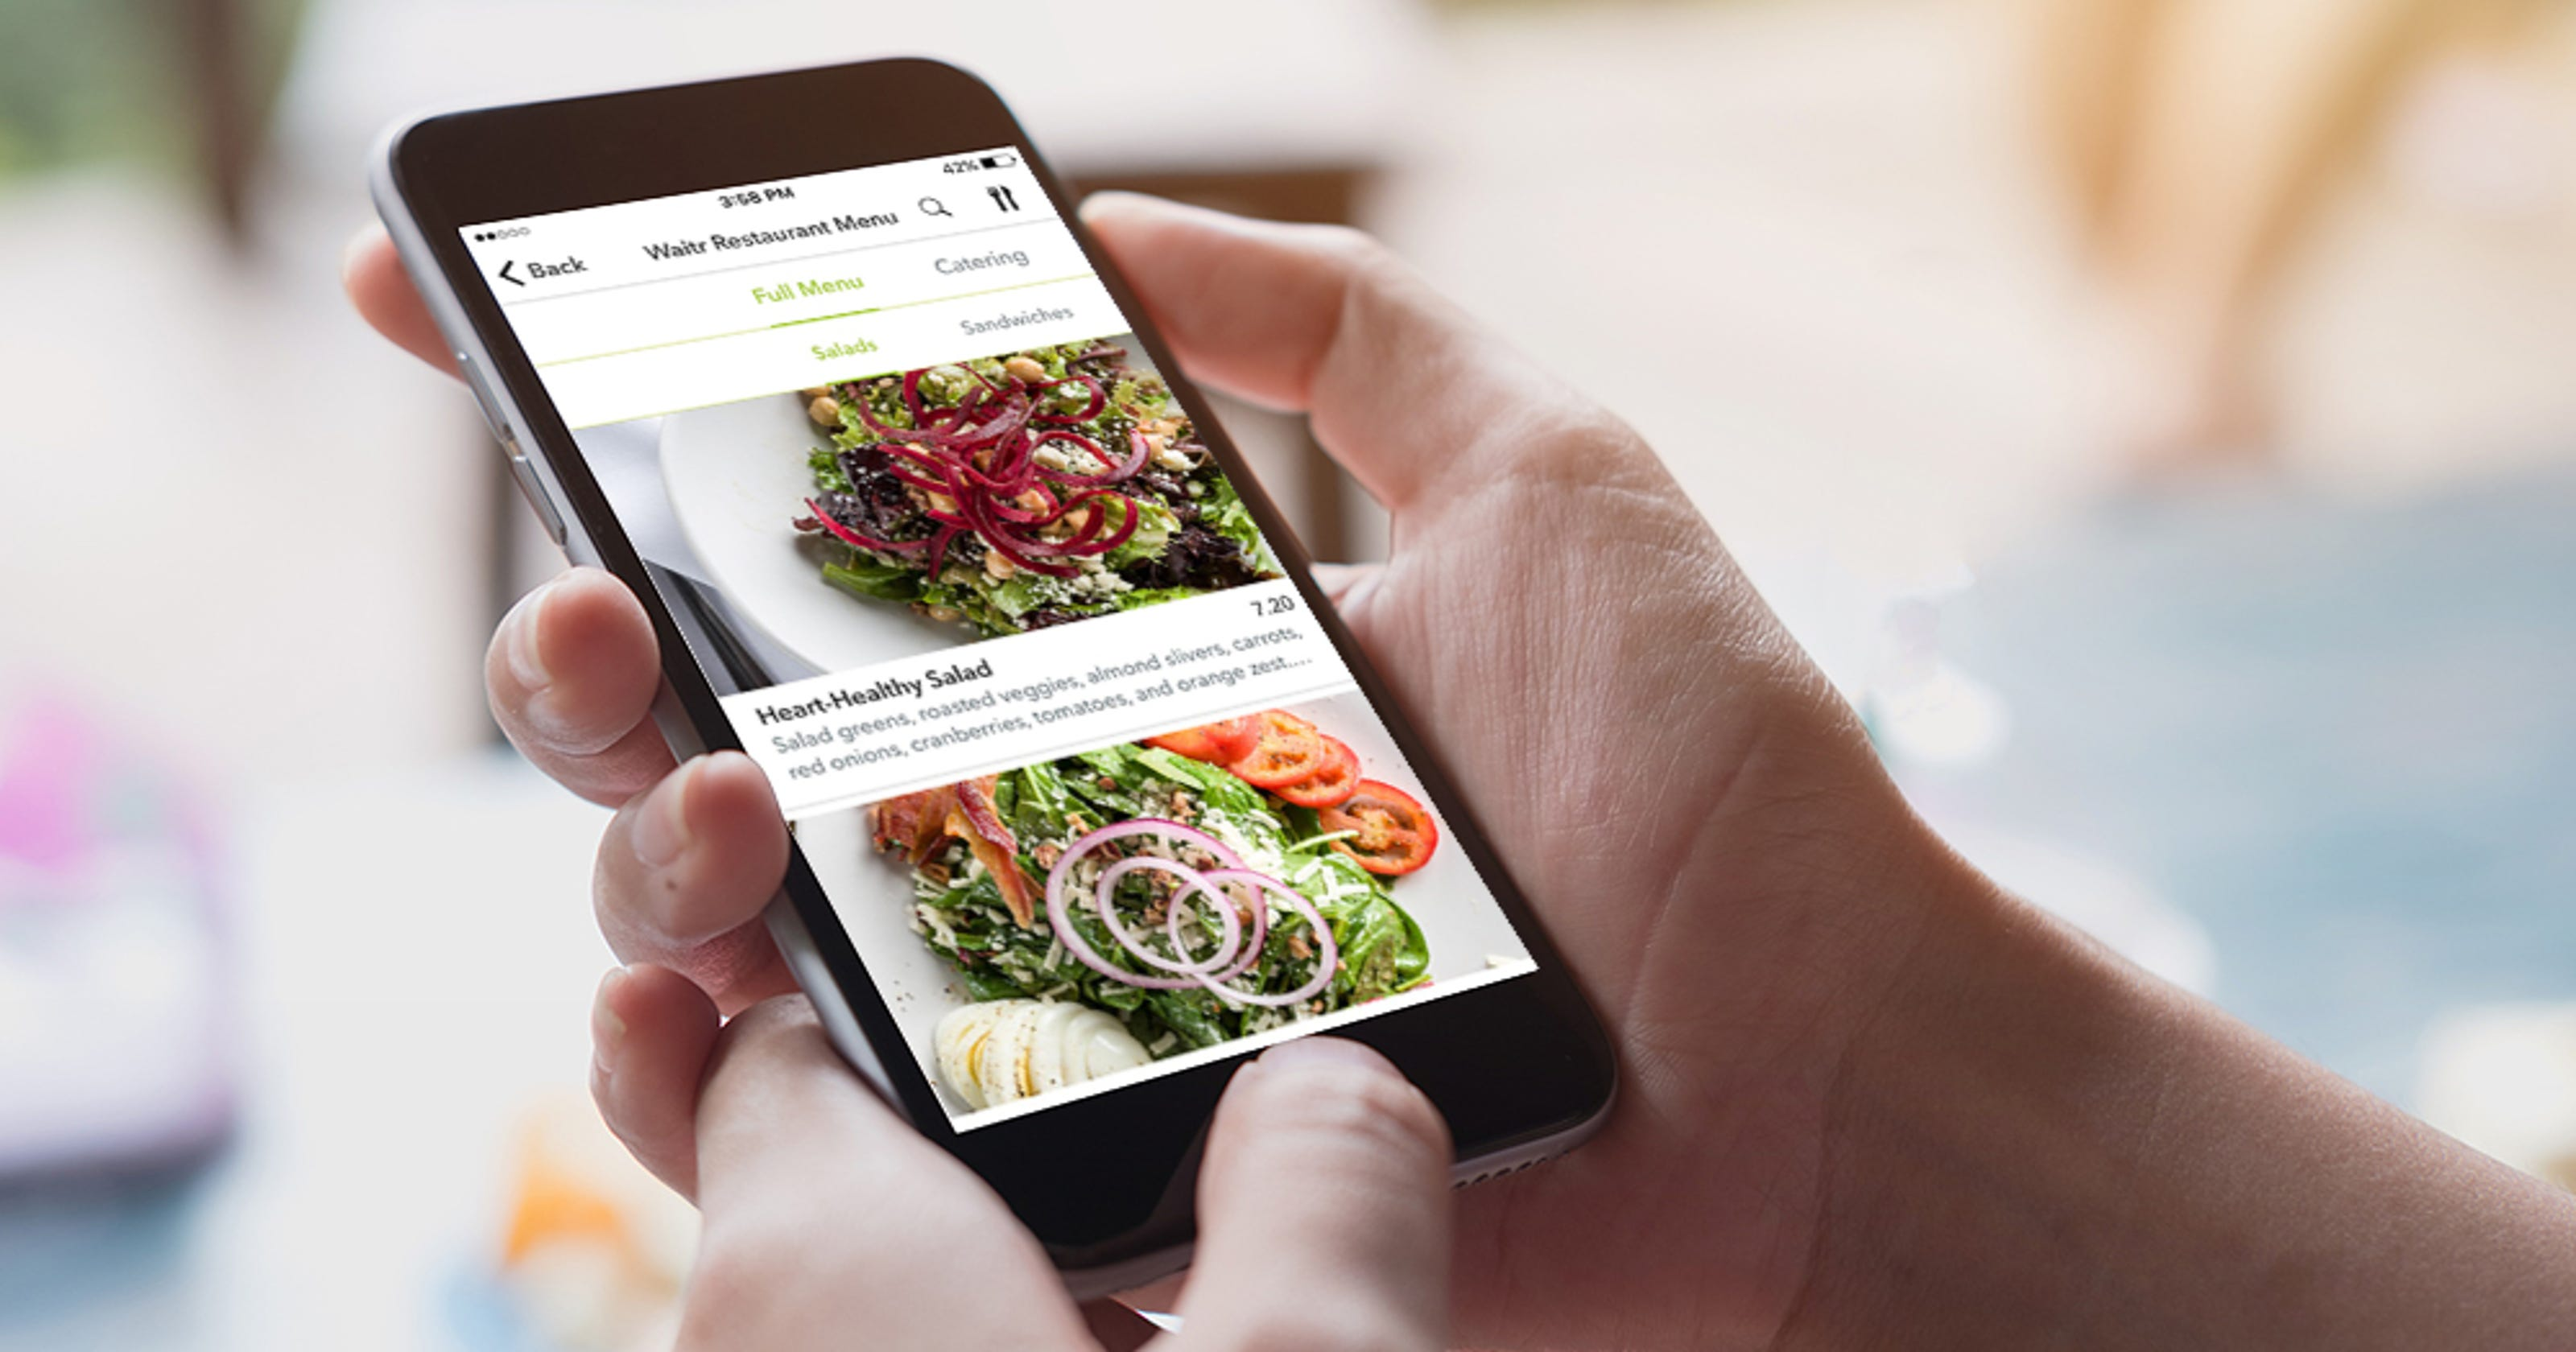 Waitr restaurant delivery service launches July 12 in New